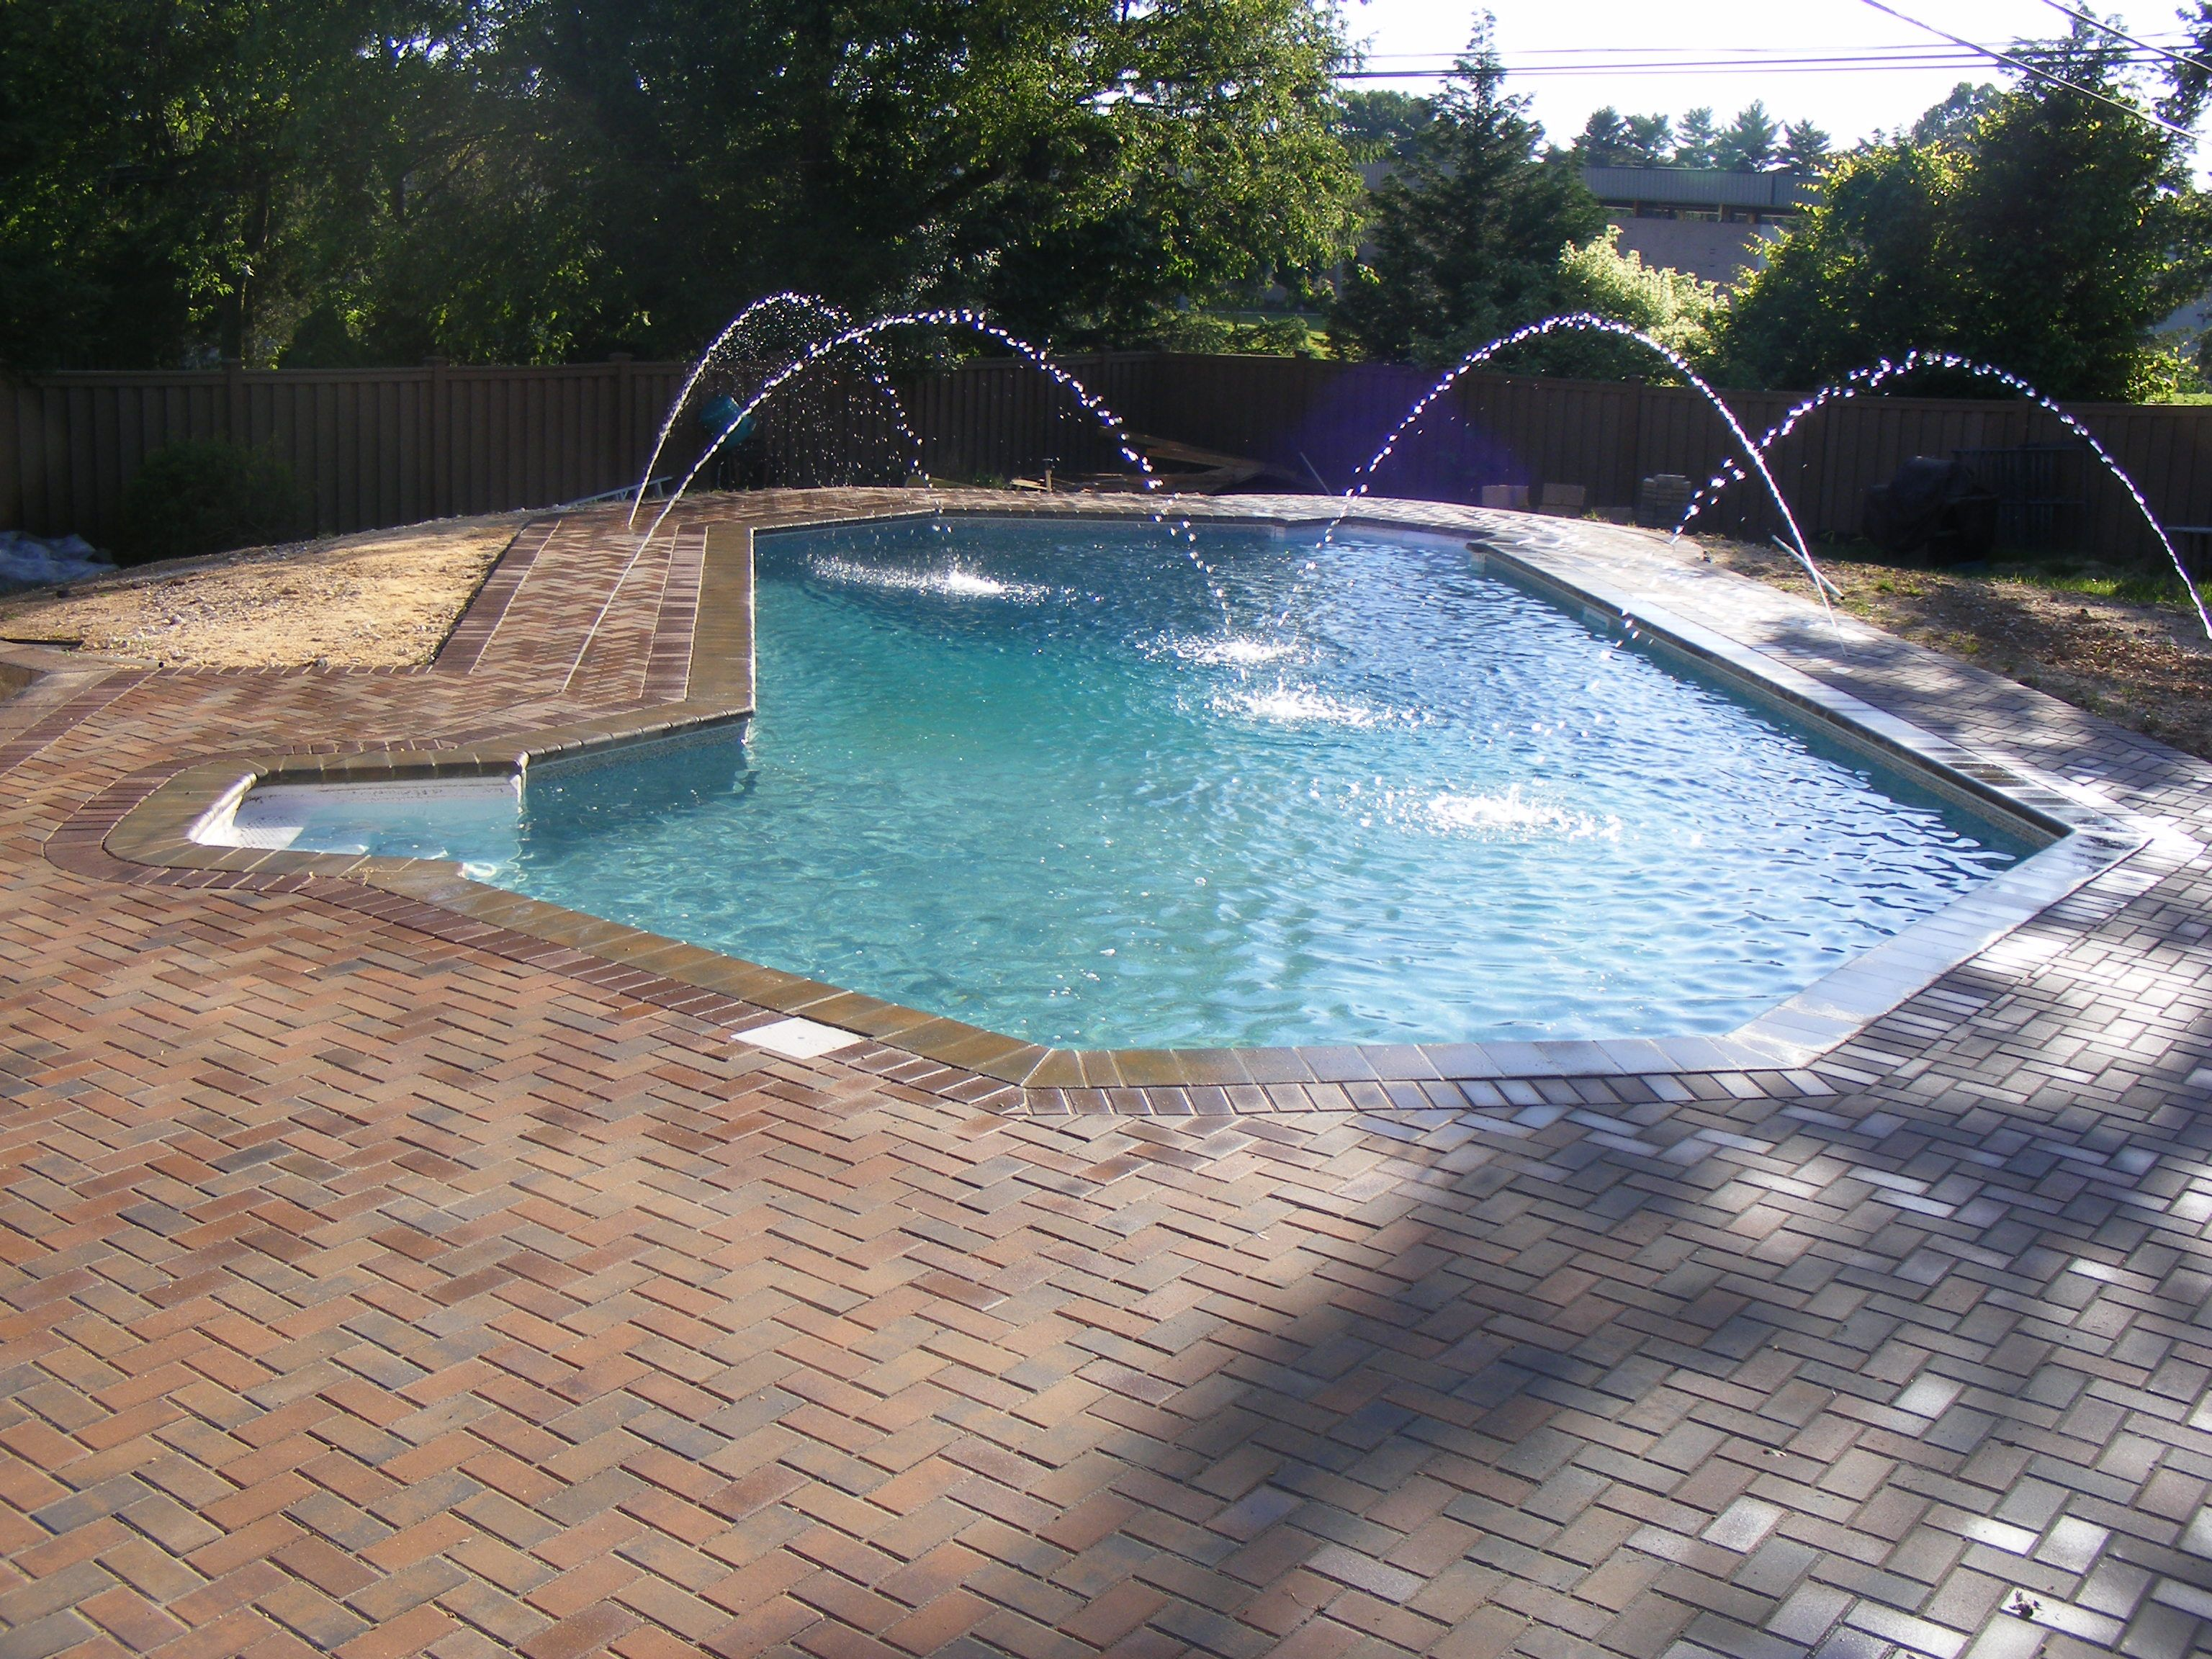 35 Year Old Vinyl Liner Pool We Remodeled Installed New